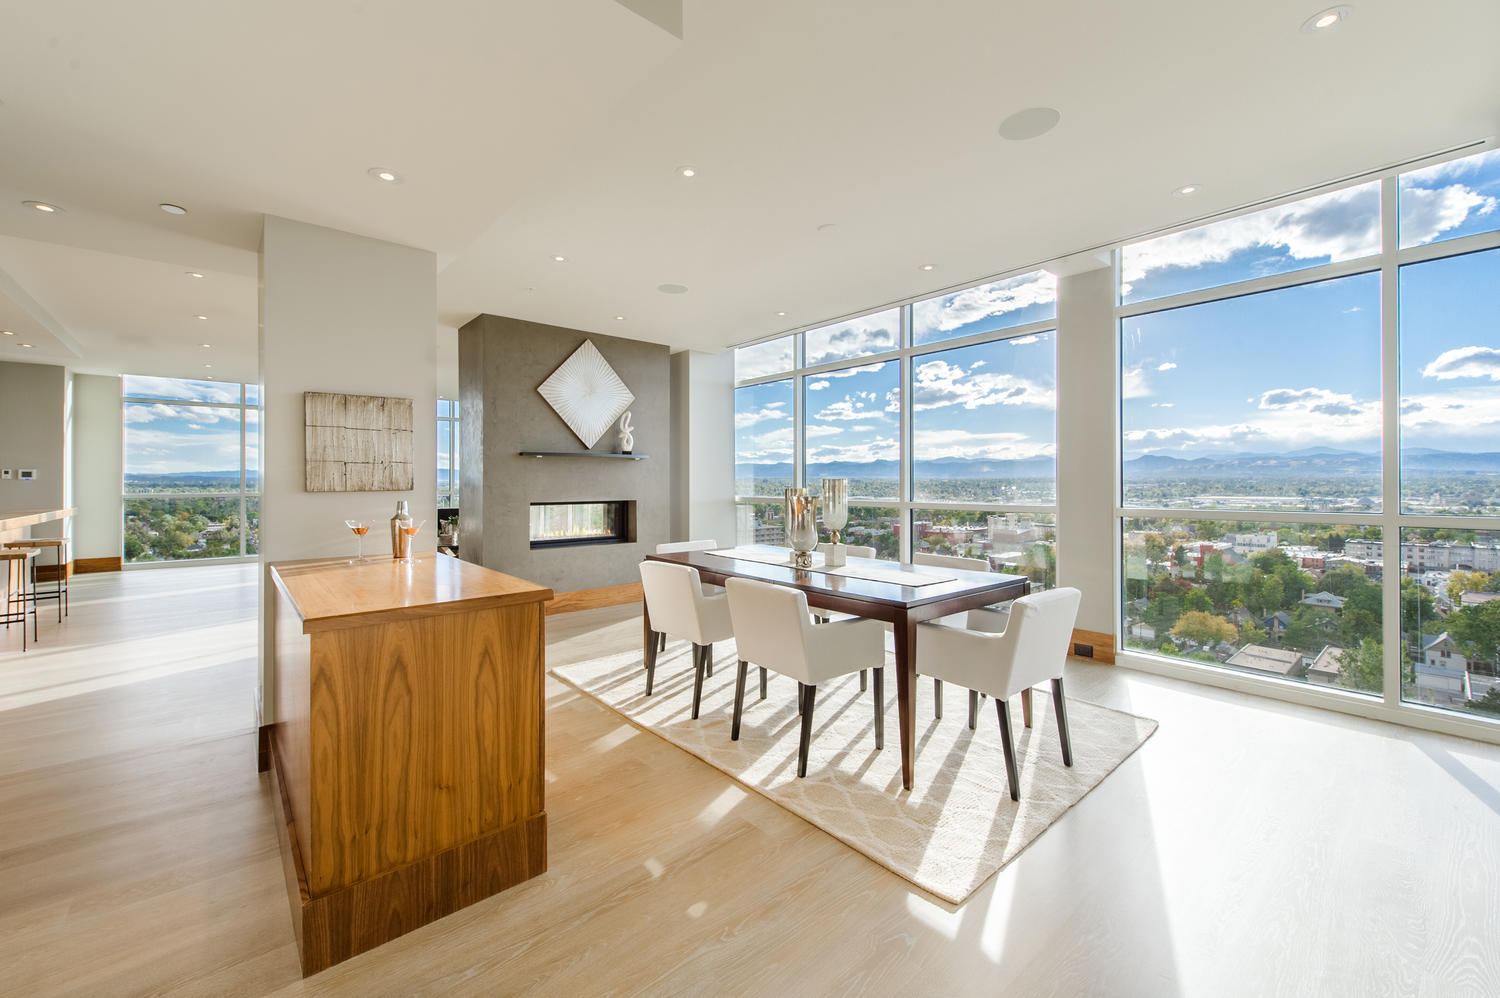 Кондоминиум для того Продажа на Striking Contemporary Penthouse in the Heart of Denver 400 East 3rd Avenue #1702 Denver, Колорадо, 80203 Соединенные Штаты